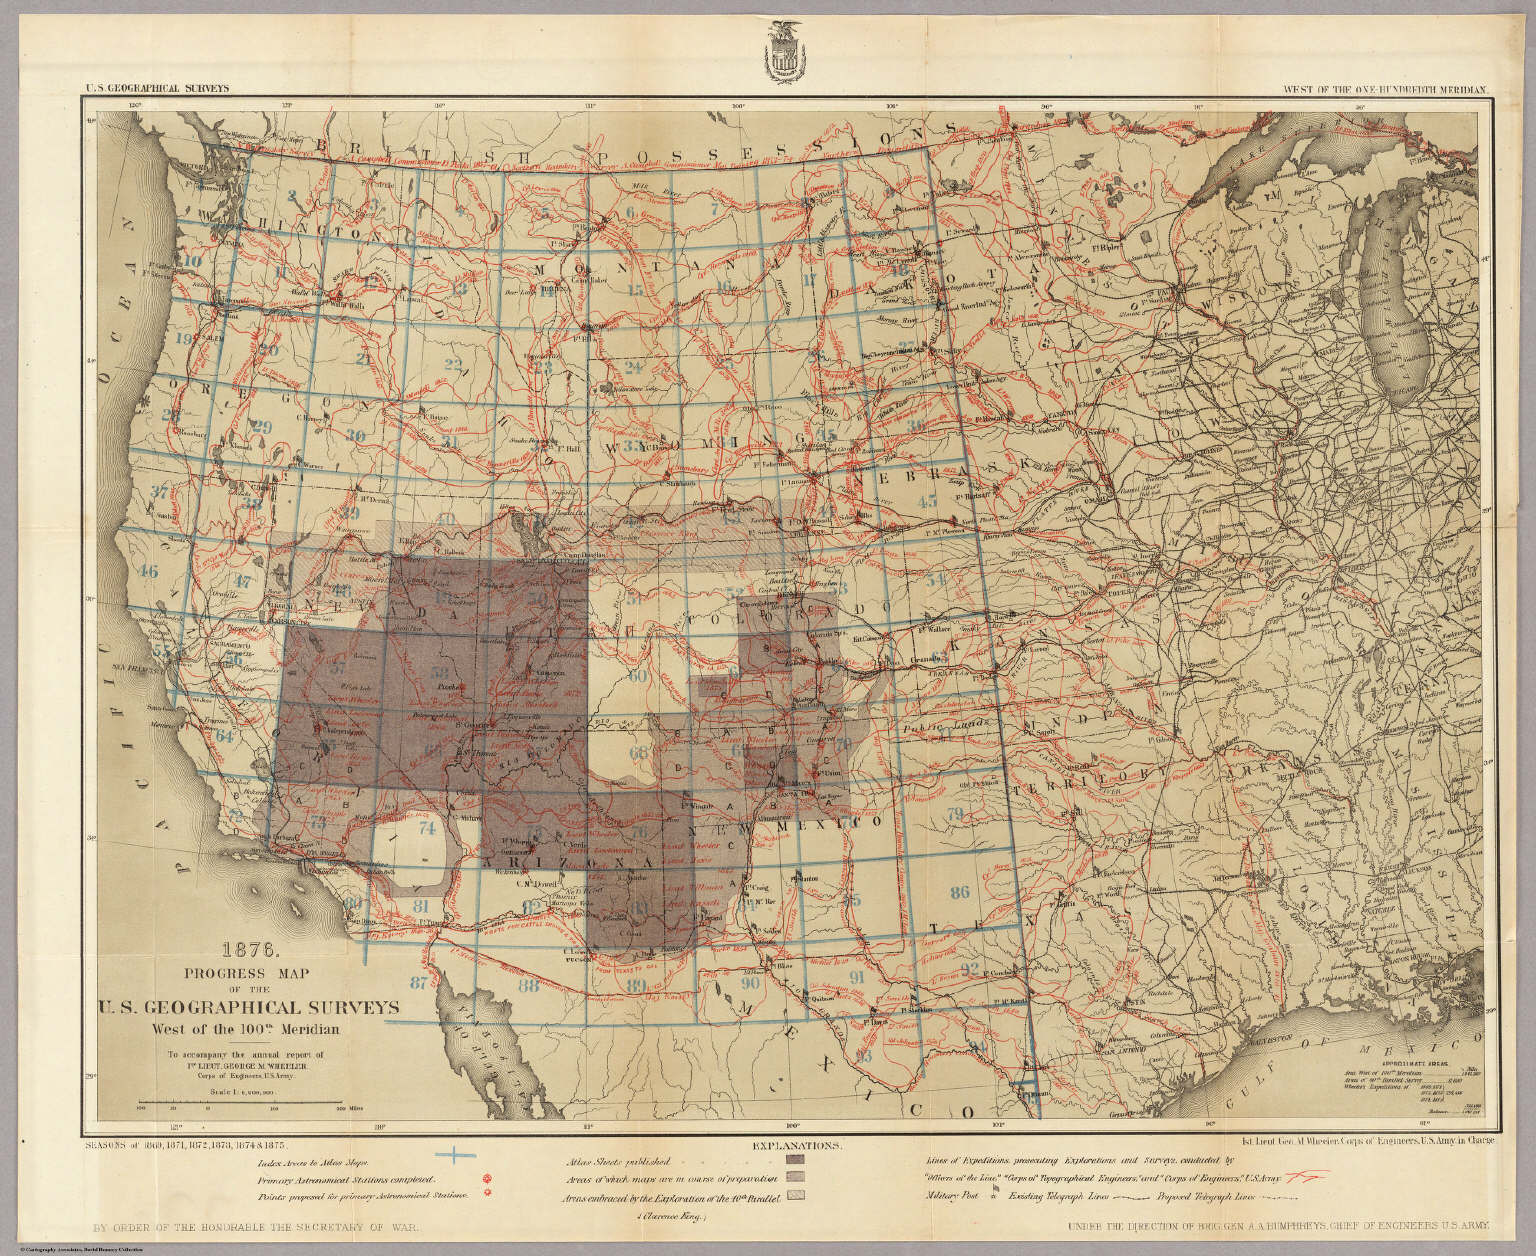 Kentucky County Map Editable%0A progress map of the u s geographical surveys west of the    th meridian  wheeler g m